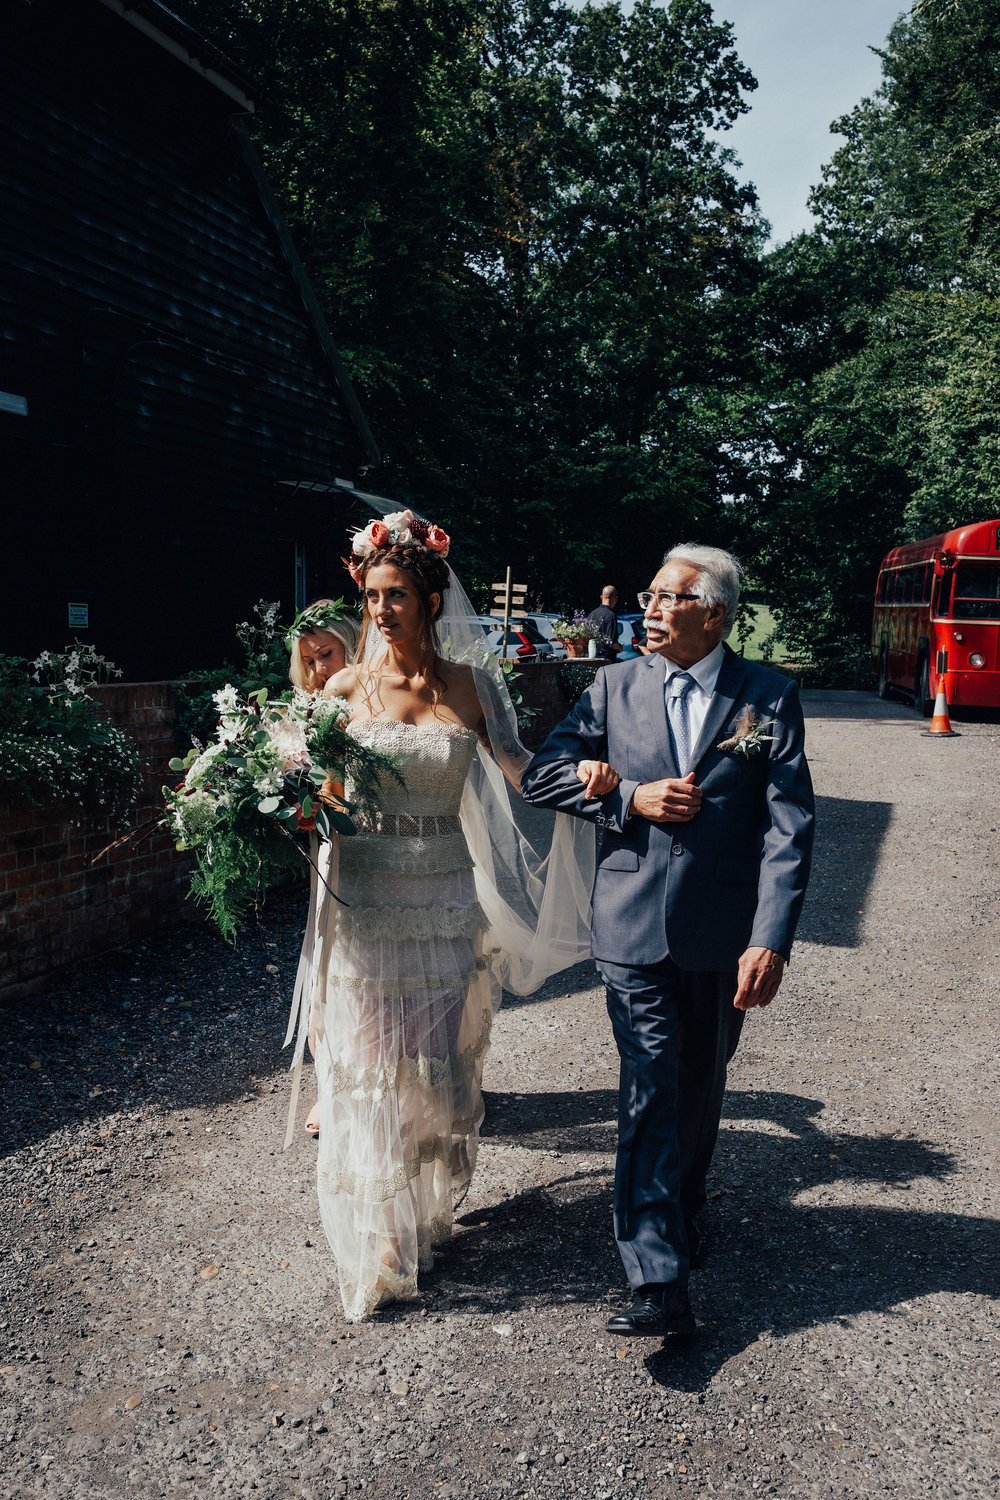 TWO_WOODS_ESTATE_WEDDING_PULBOROUGH_PJ_PHILLIPS_PHOTOGRAPHY_FRAN_&_GEORGE_61.jpg